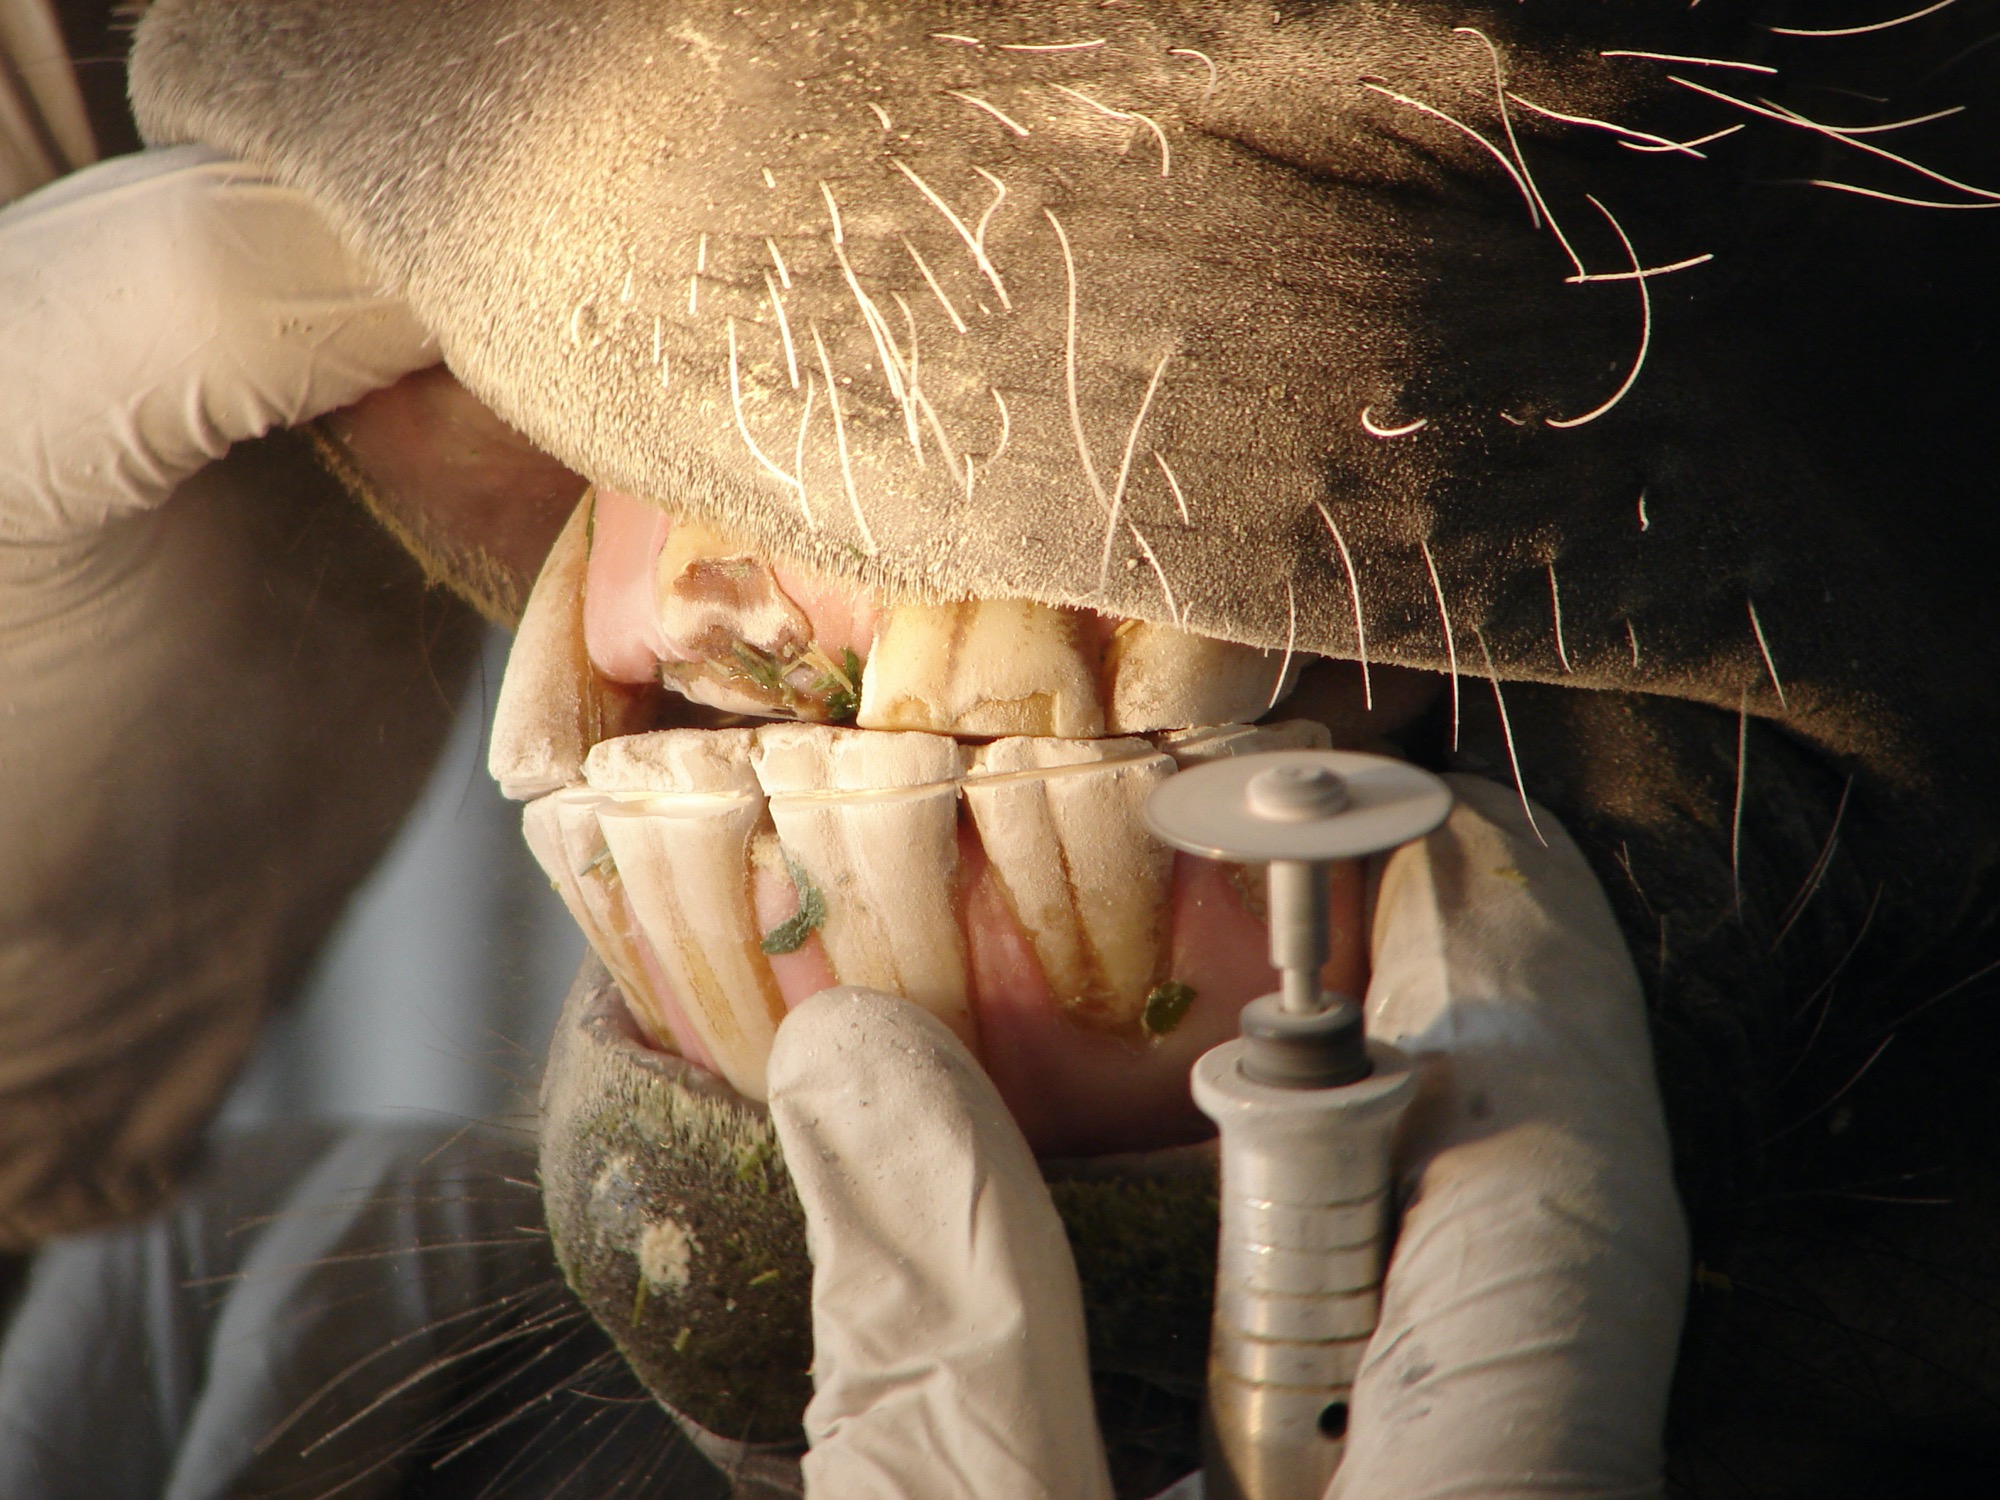 An equine dentist working on horse teeth with a power tool